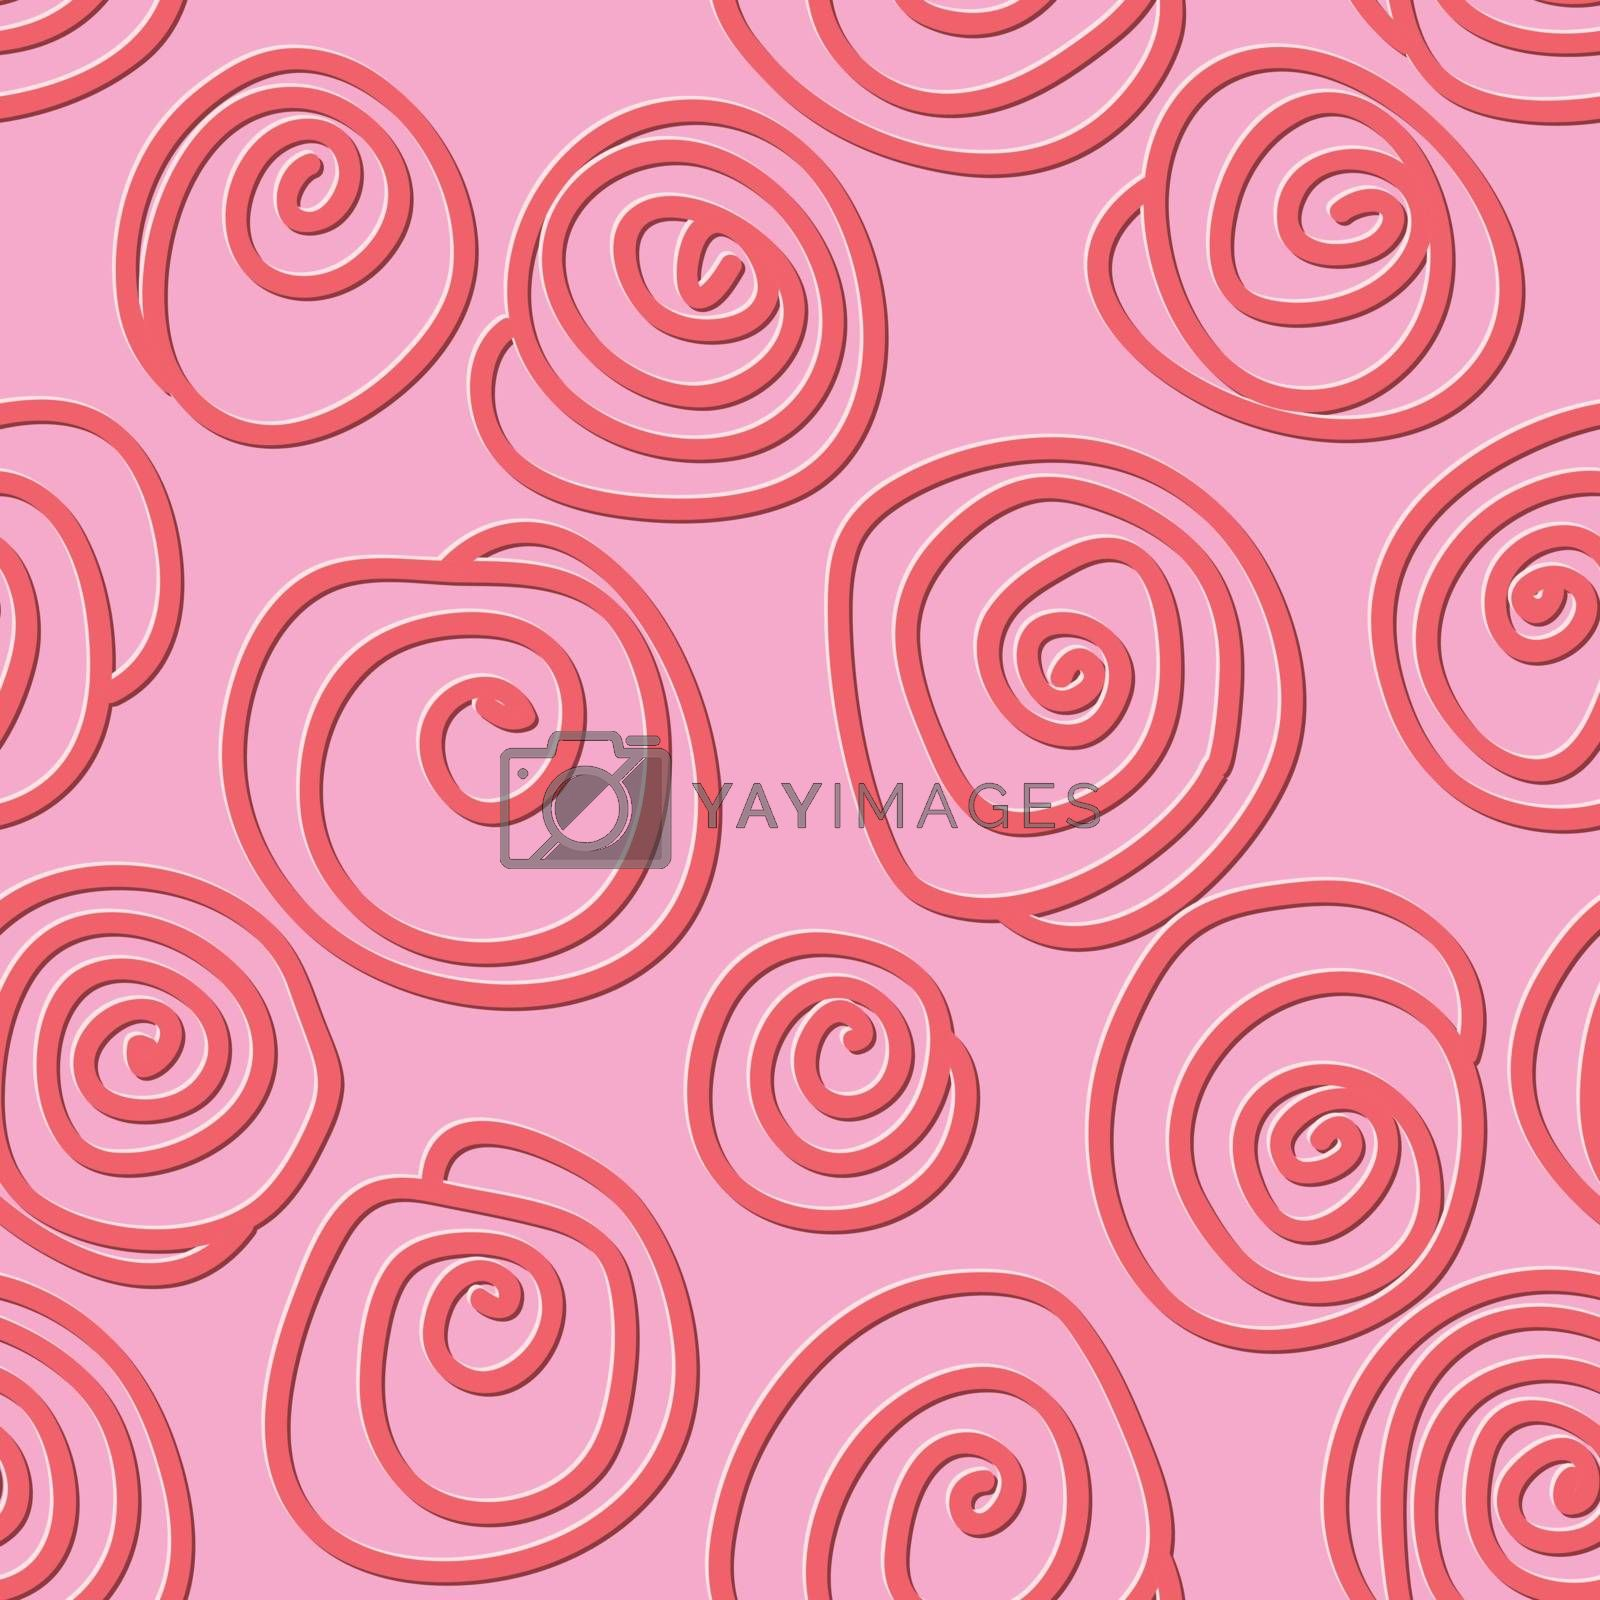 Circles and swirls seamless pattern in vintage style